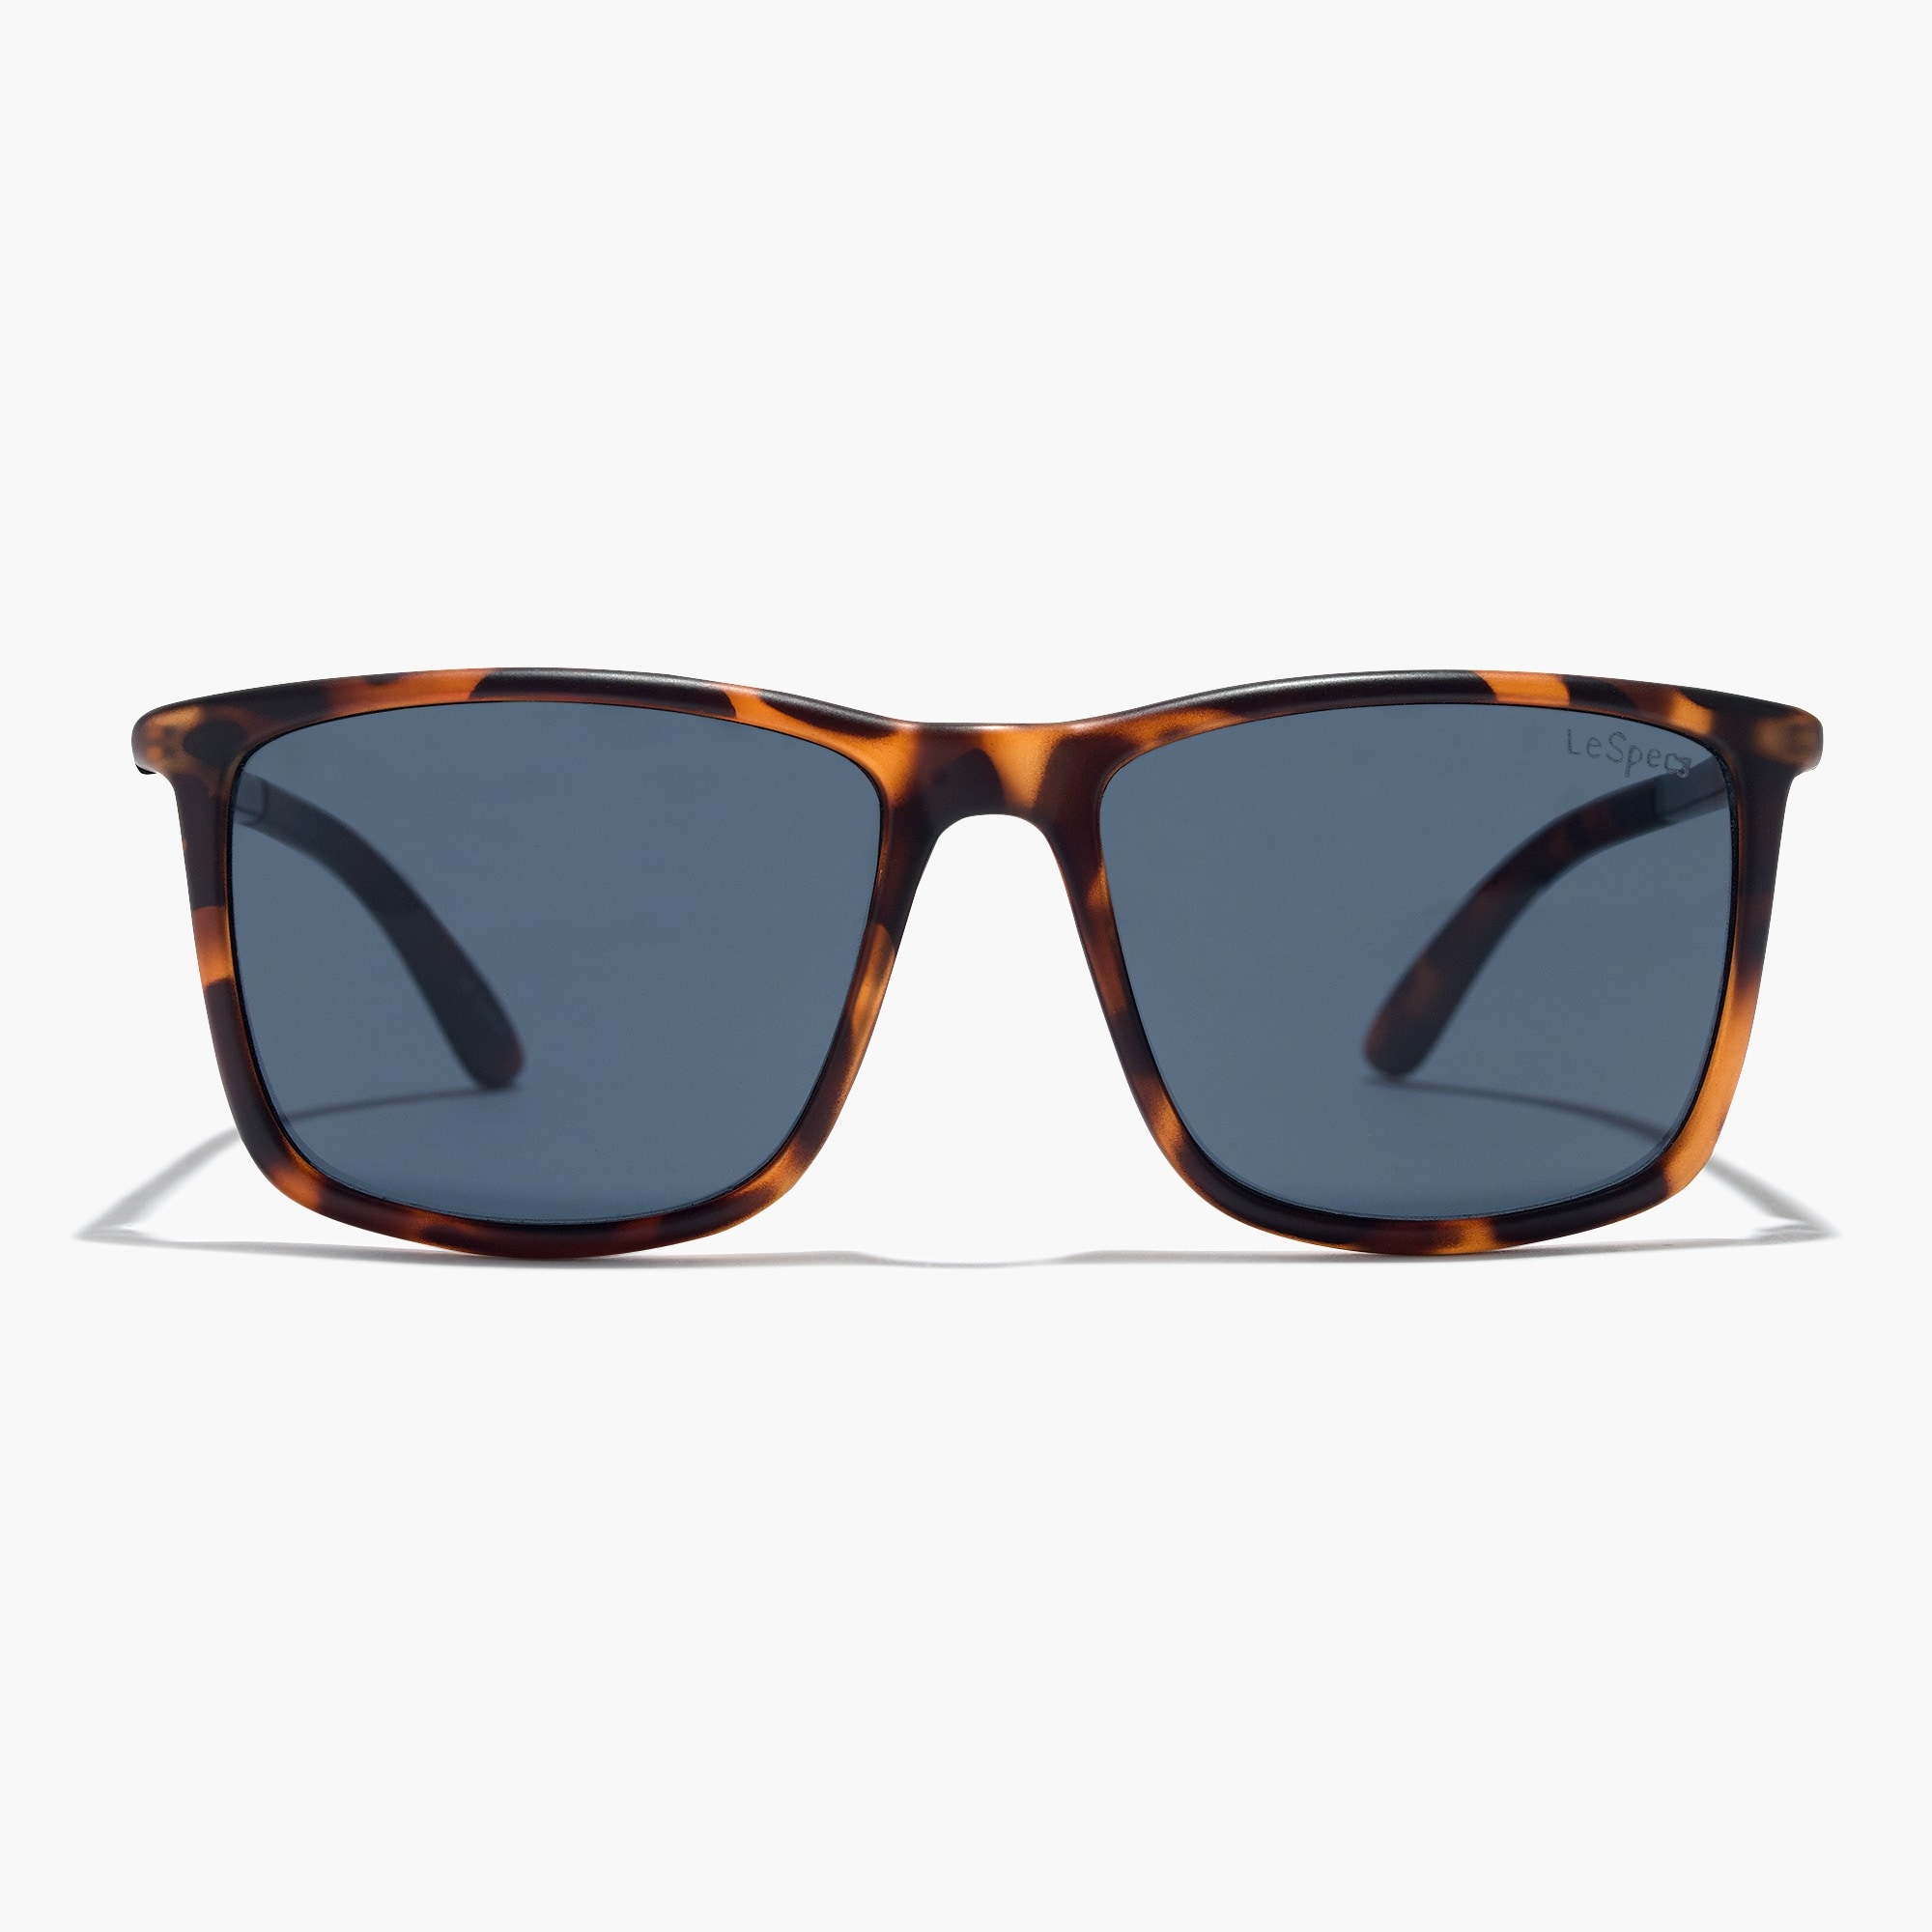 mens LeSpecs® Tweedledum sunglasses